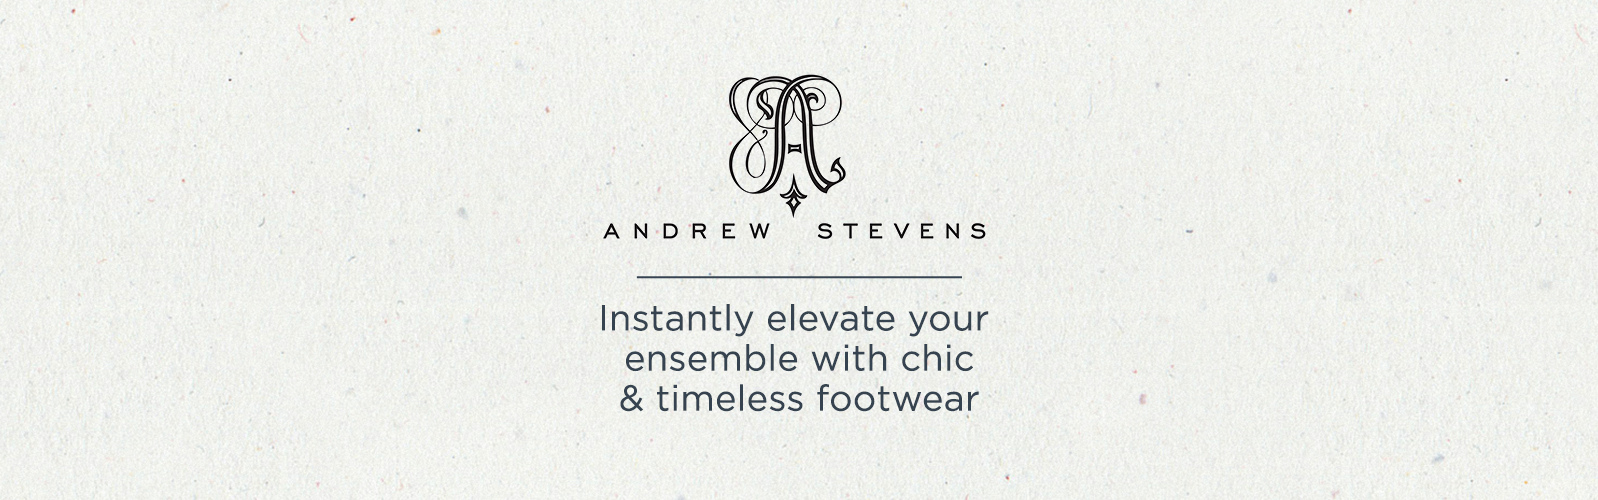 Andrew Stevens. Instantly elevate your ensemble with chic & timeless footwear